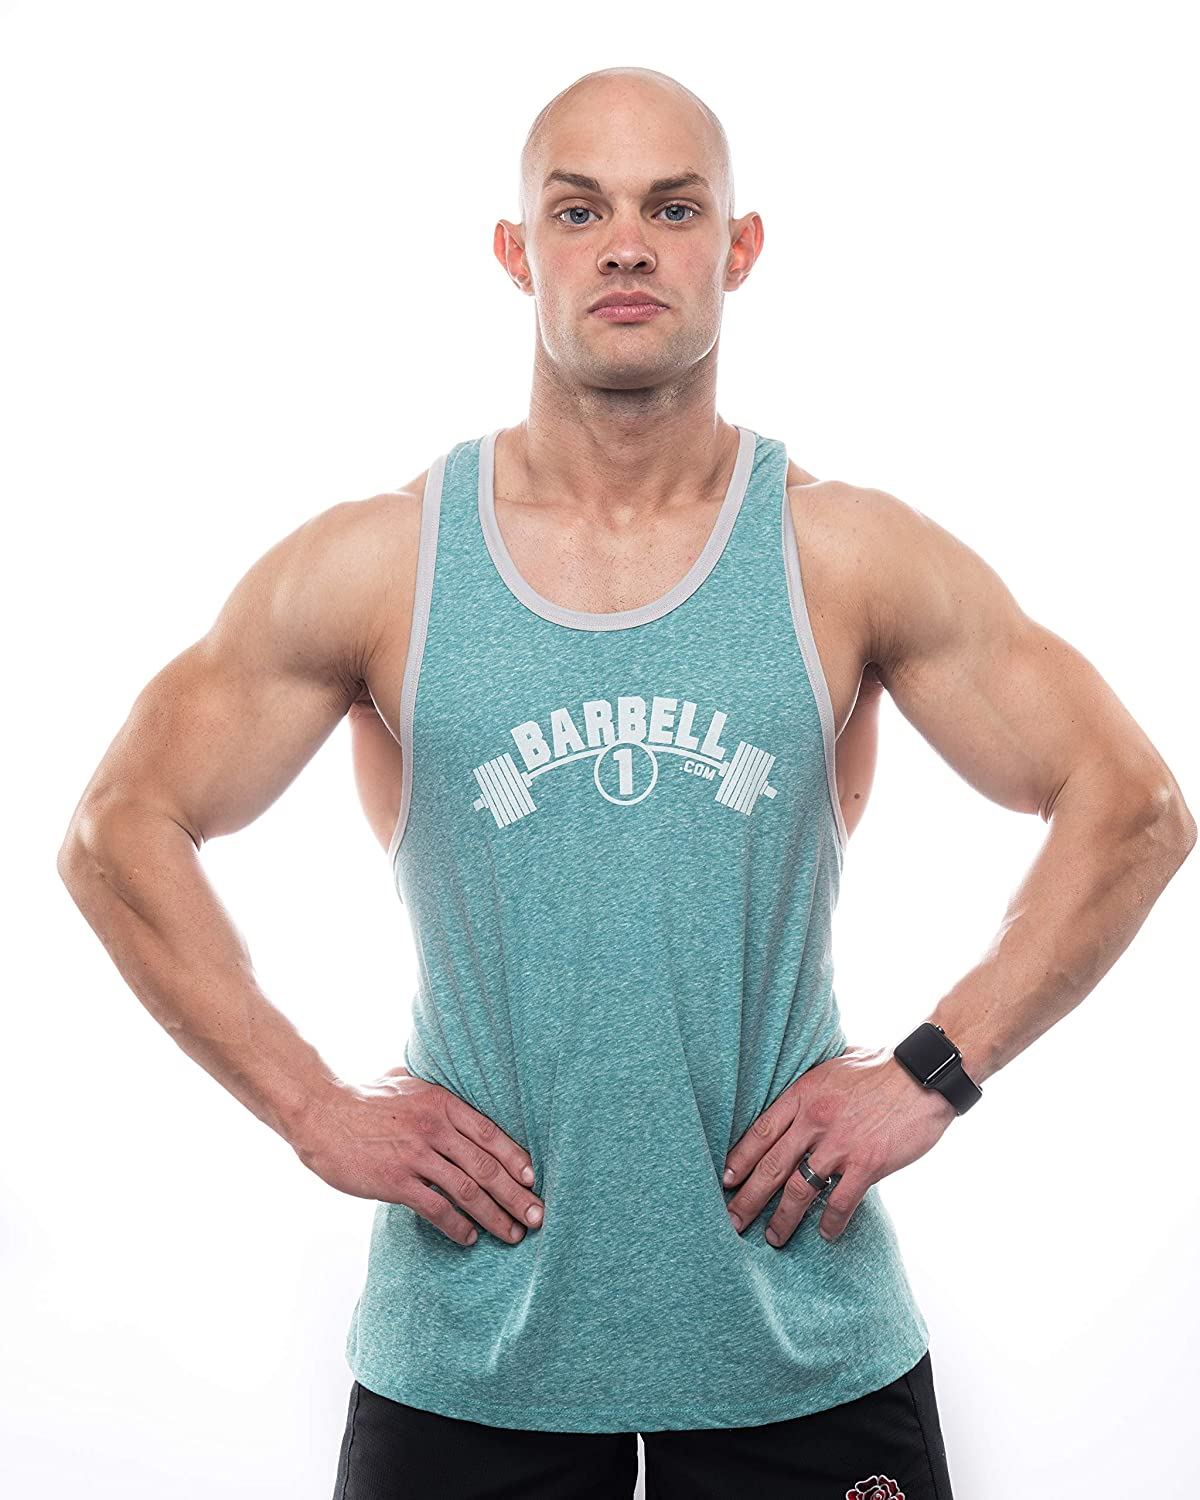 f39be156ef5fe Amazon.com: Barbell 1 Bodybuilding Muscle Stringer Y Back Tank Top, Lifting  Shirt for Gym: Clothing